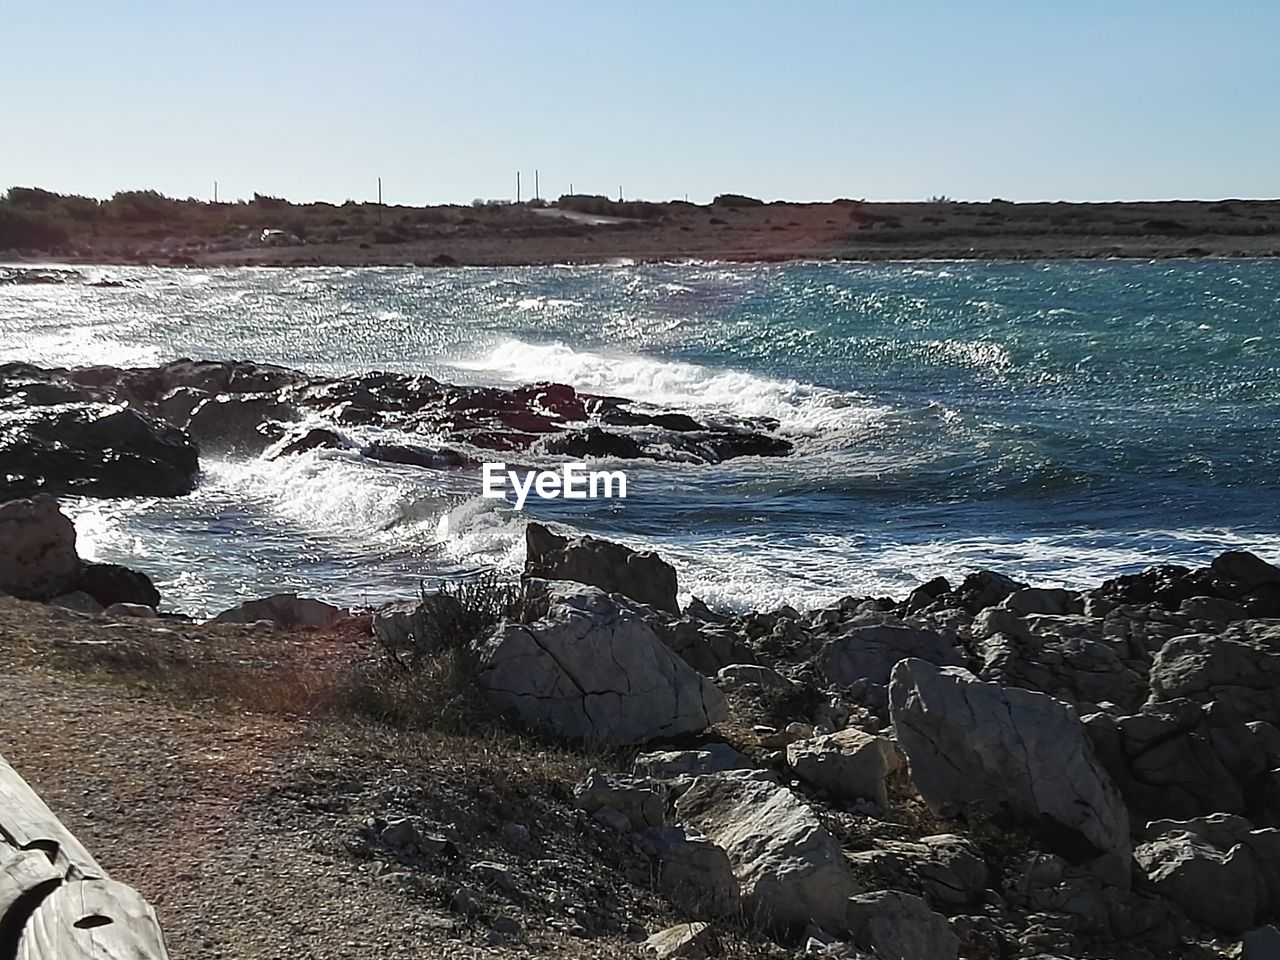 sea, water, wave, nature, beach, rock - object, beauty in nature, sunlight, outdoors, day, no people, clear sky, horizon over water, scenics, tranquility, sky